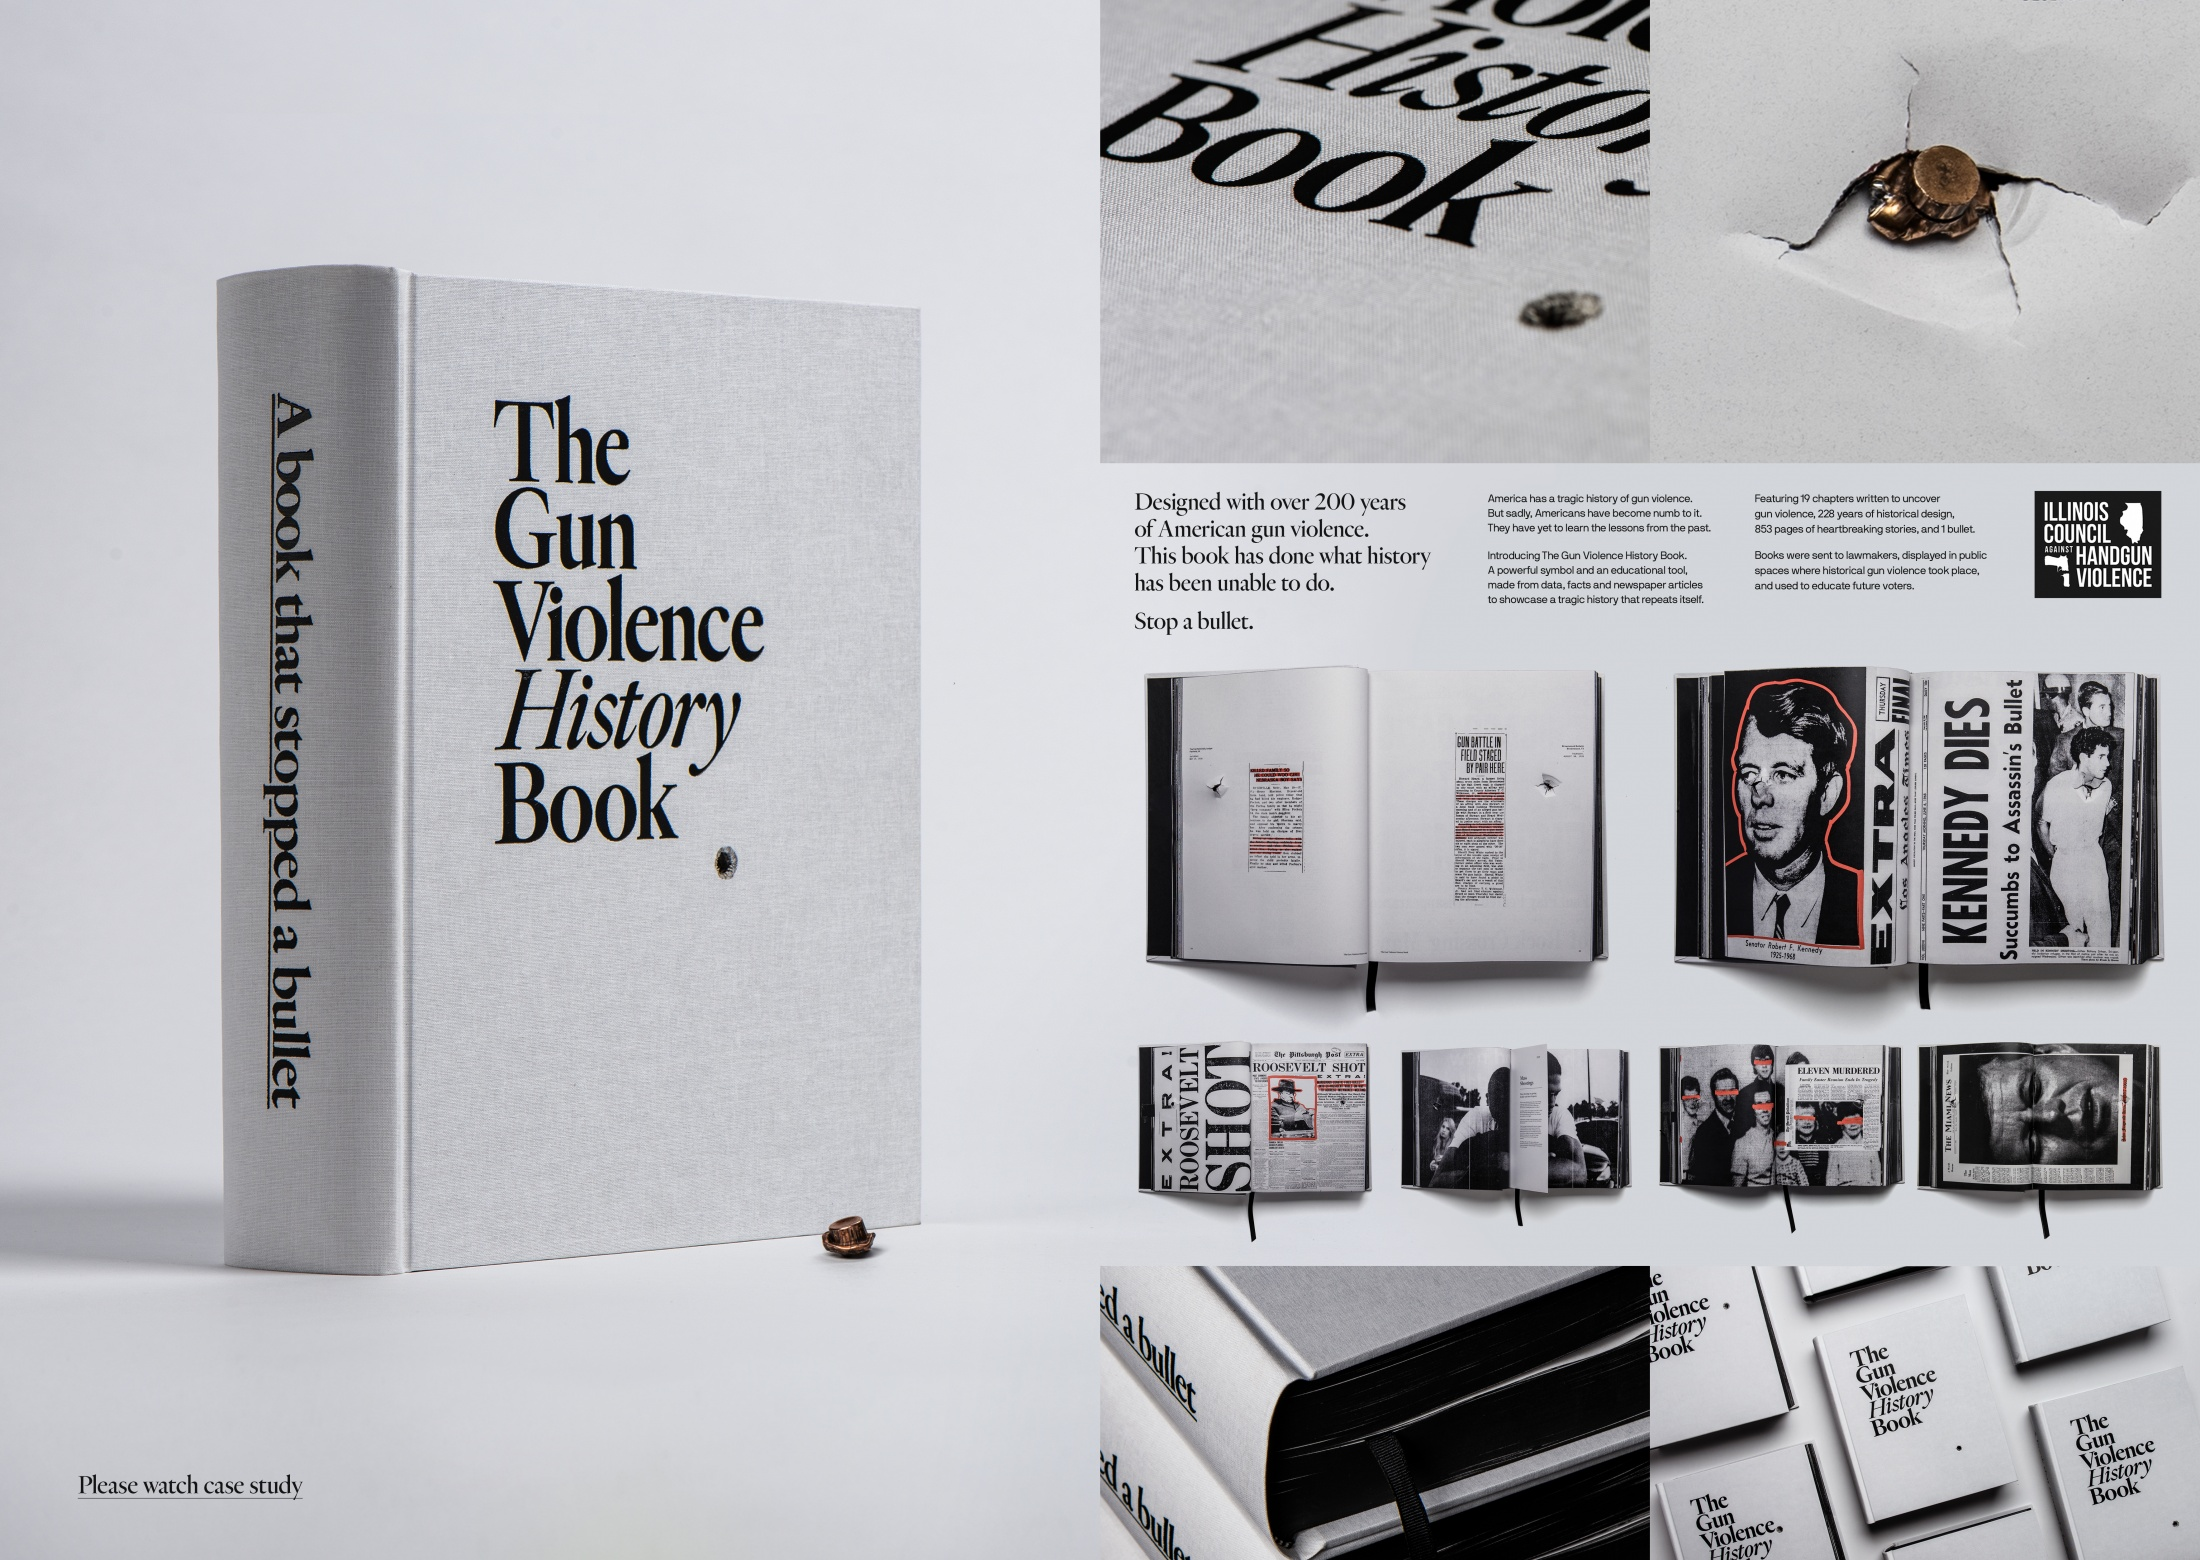 Image Media for The Gun Violence History Book